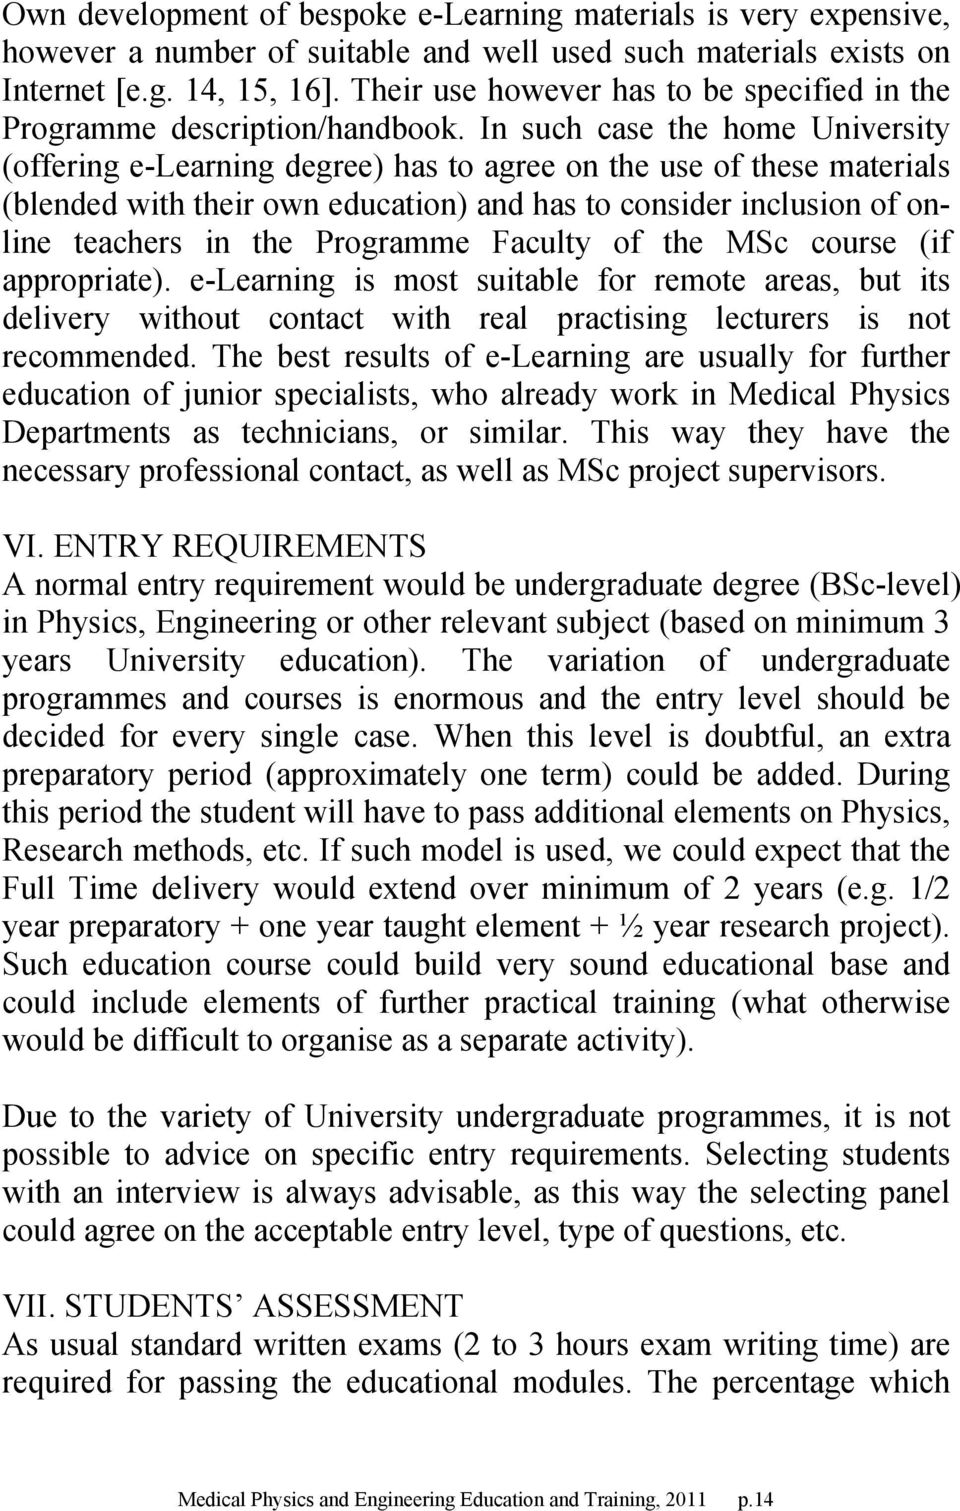 MEDICAL PHYSICS AND ENGINEERING EDUCATION AND TRAINING - PDF